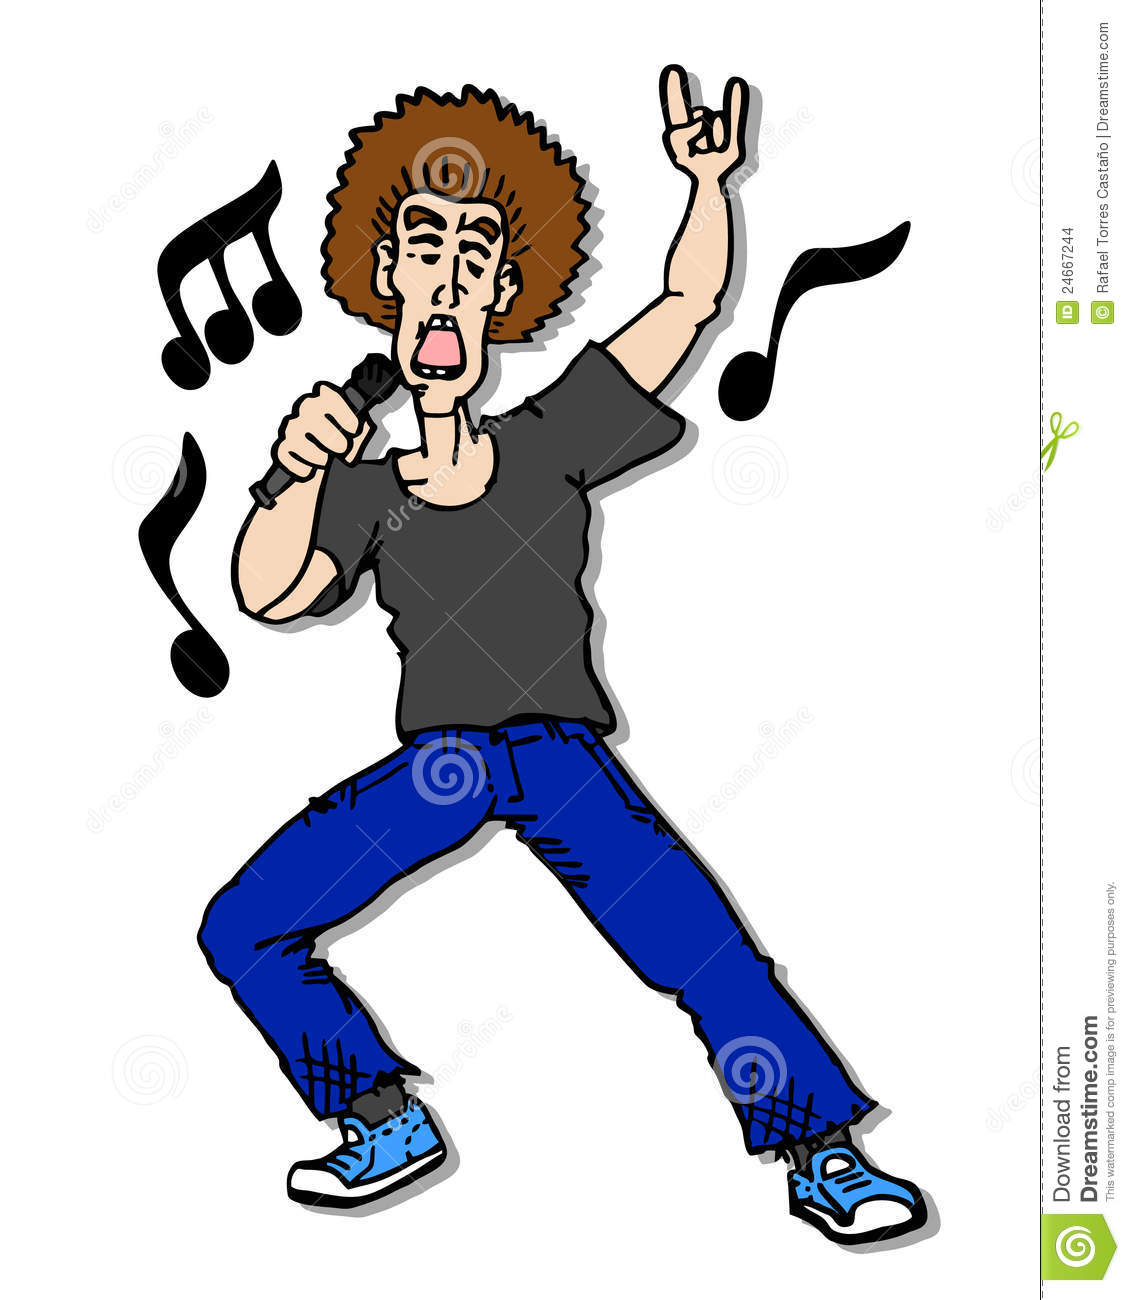 Cartoon Music Man Stock Images - Image: 24667244